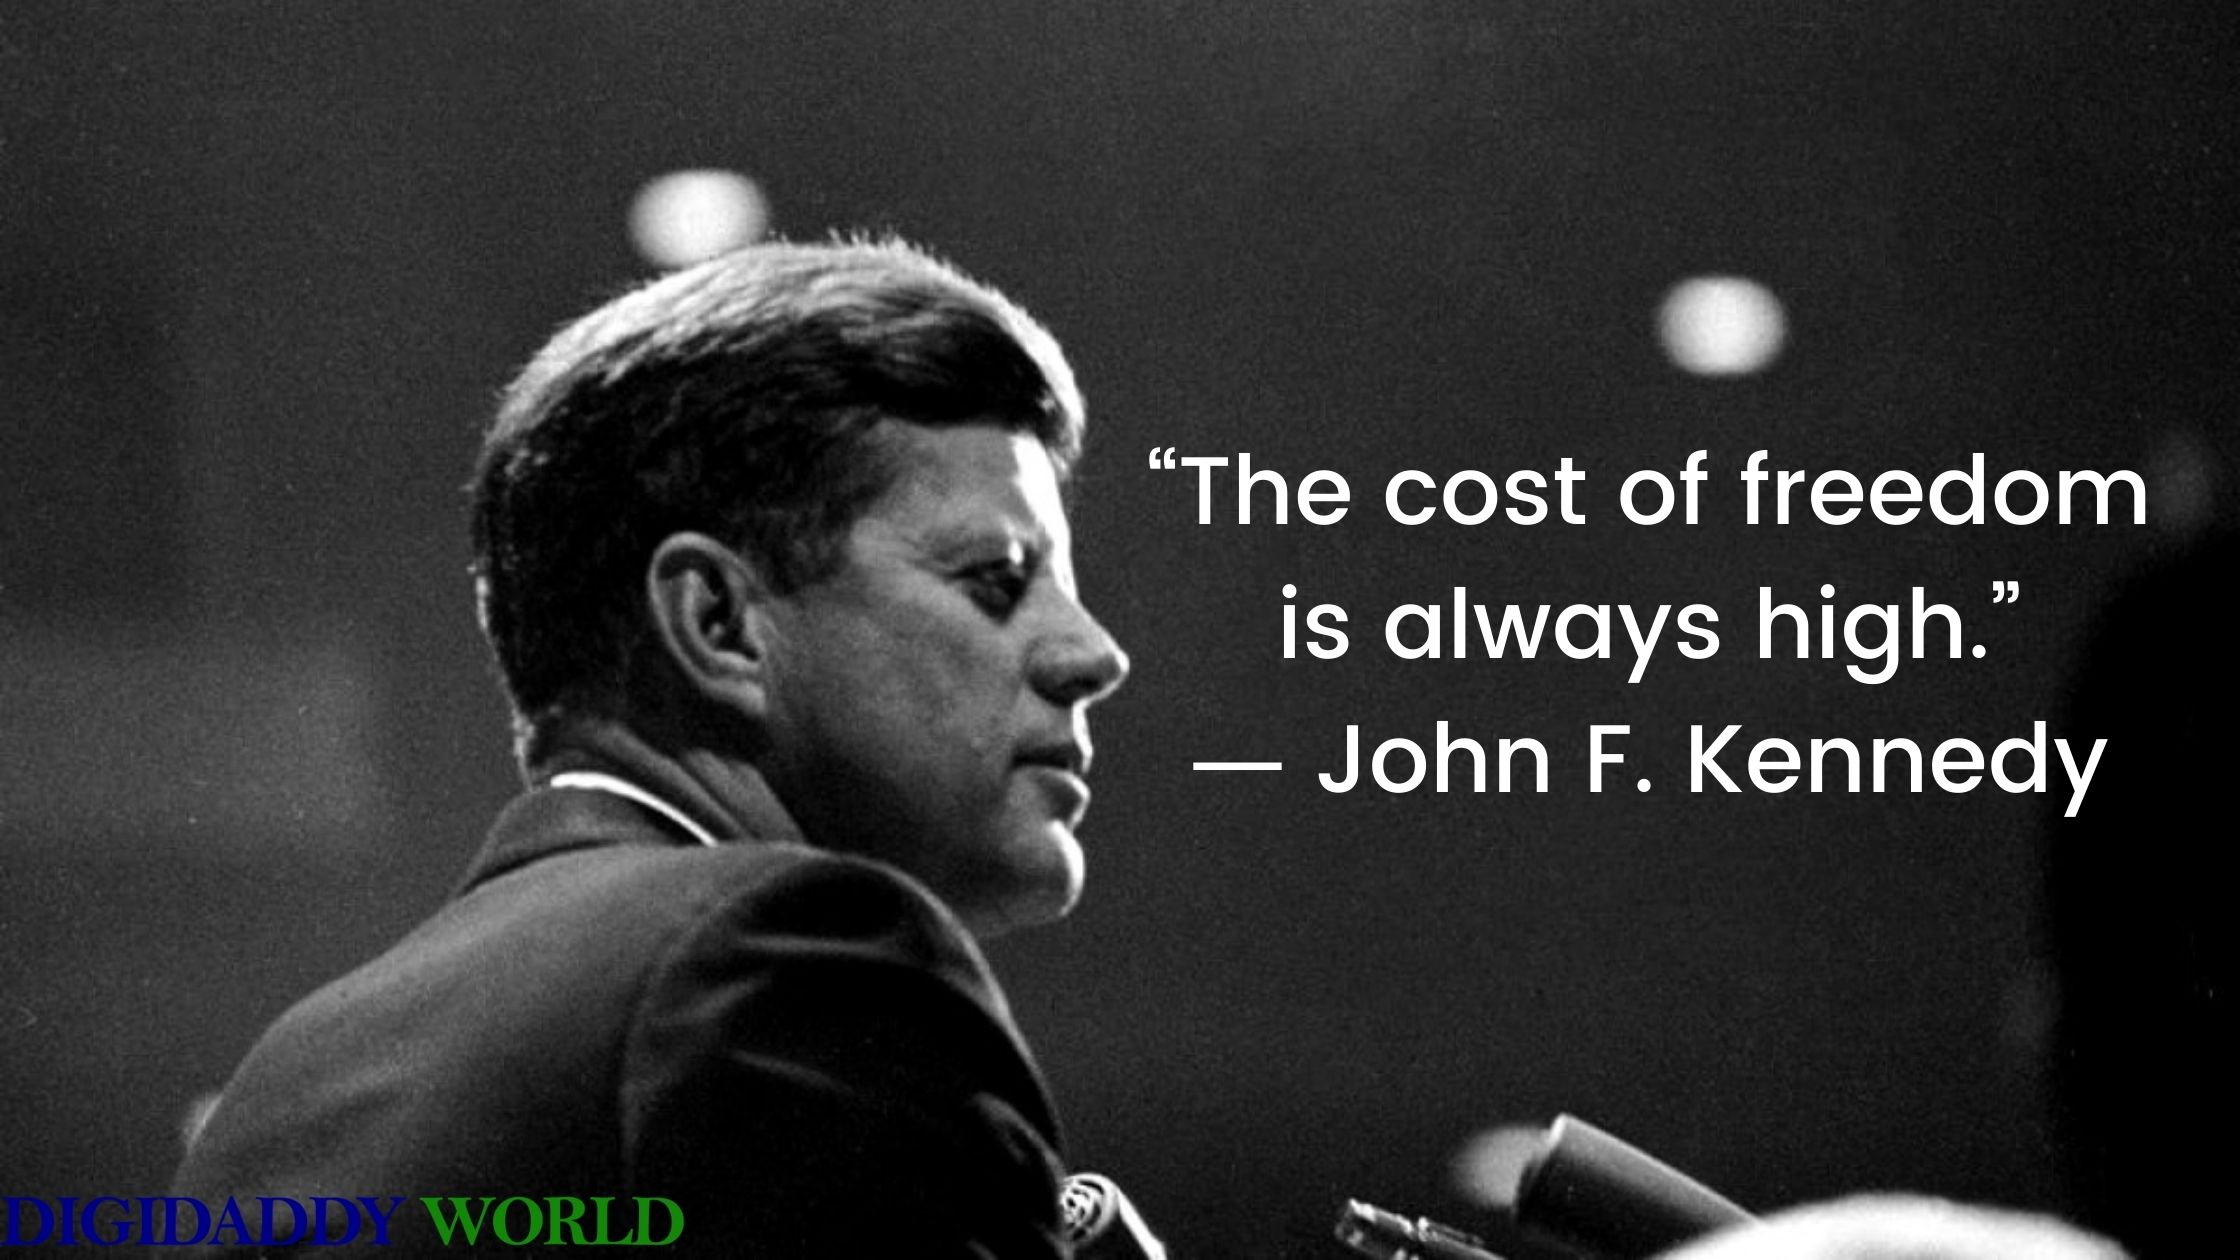 Famous Quotes From John F. Kennedy - JFK Sayings